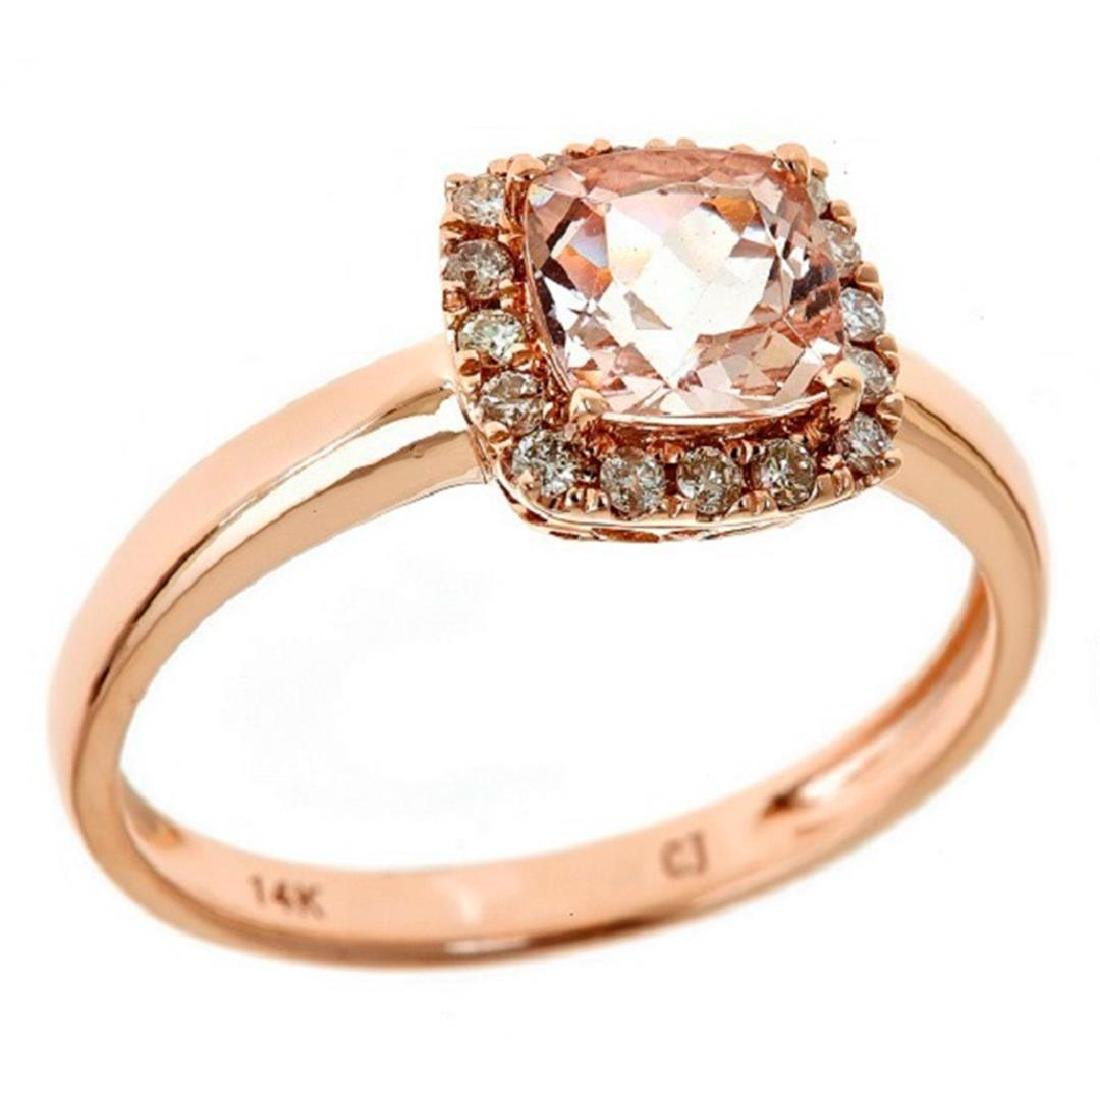 0.9 ctw Morganite and Diamond Ring - 14KT Rose Gold - 2